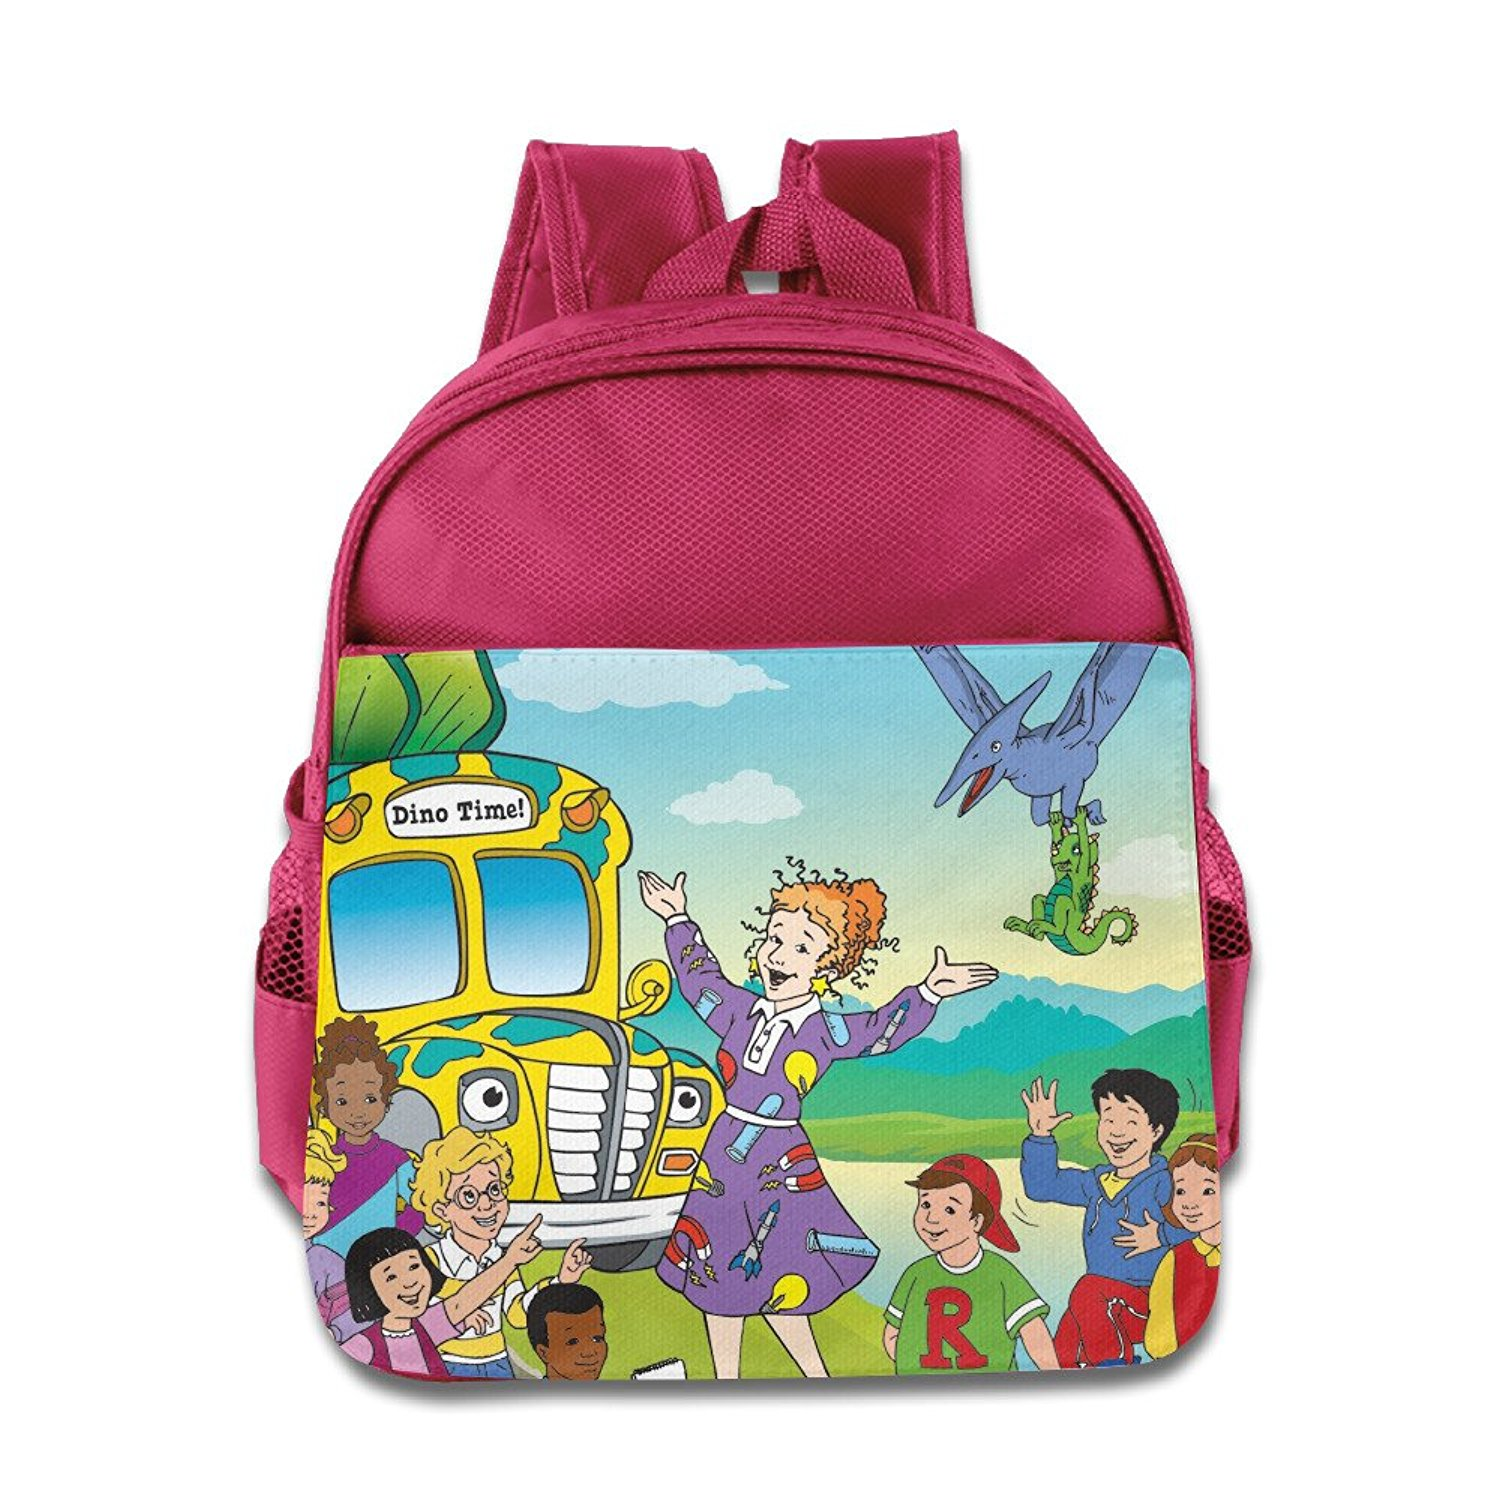 d826fe4f46a8 Get Quotations · Toddler Kids The Magic School Bus School Backpack Cool Children  School Bags